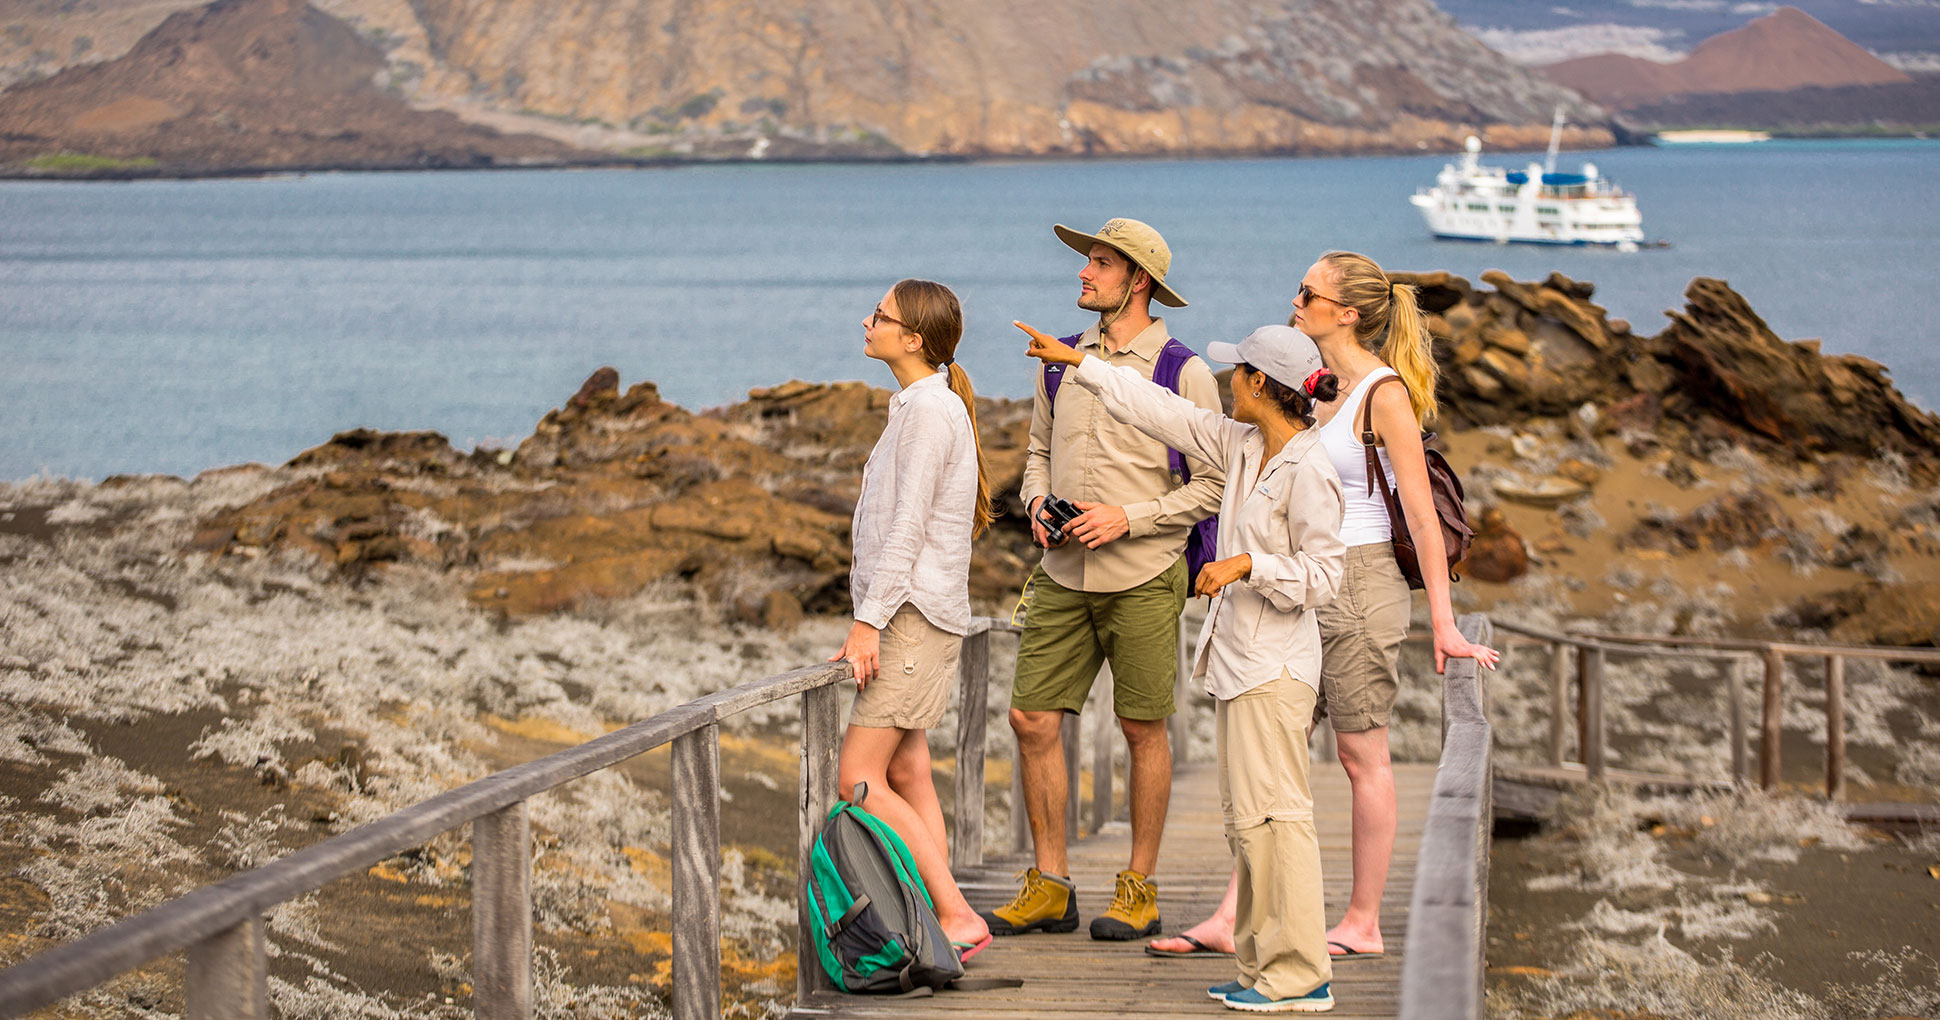 Explorations on the Galapagos Islands